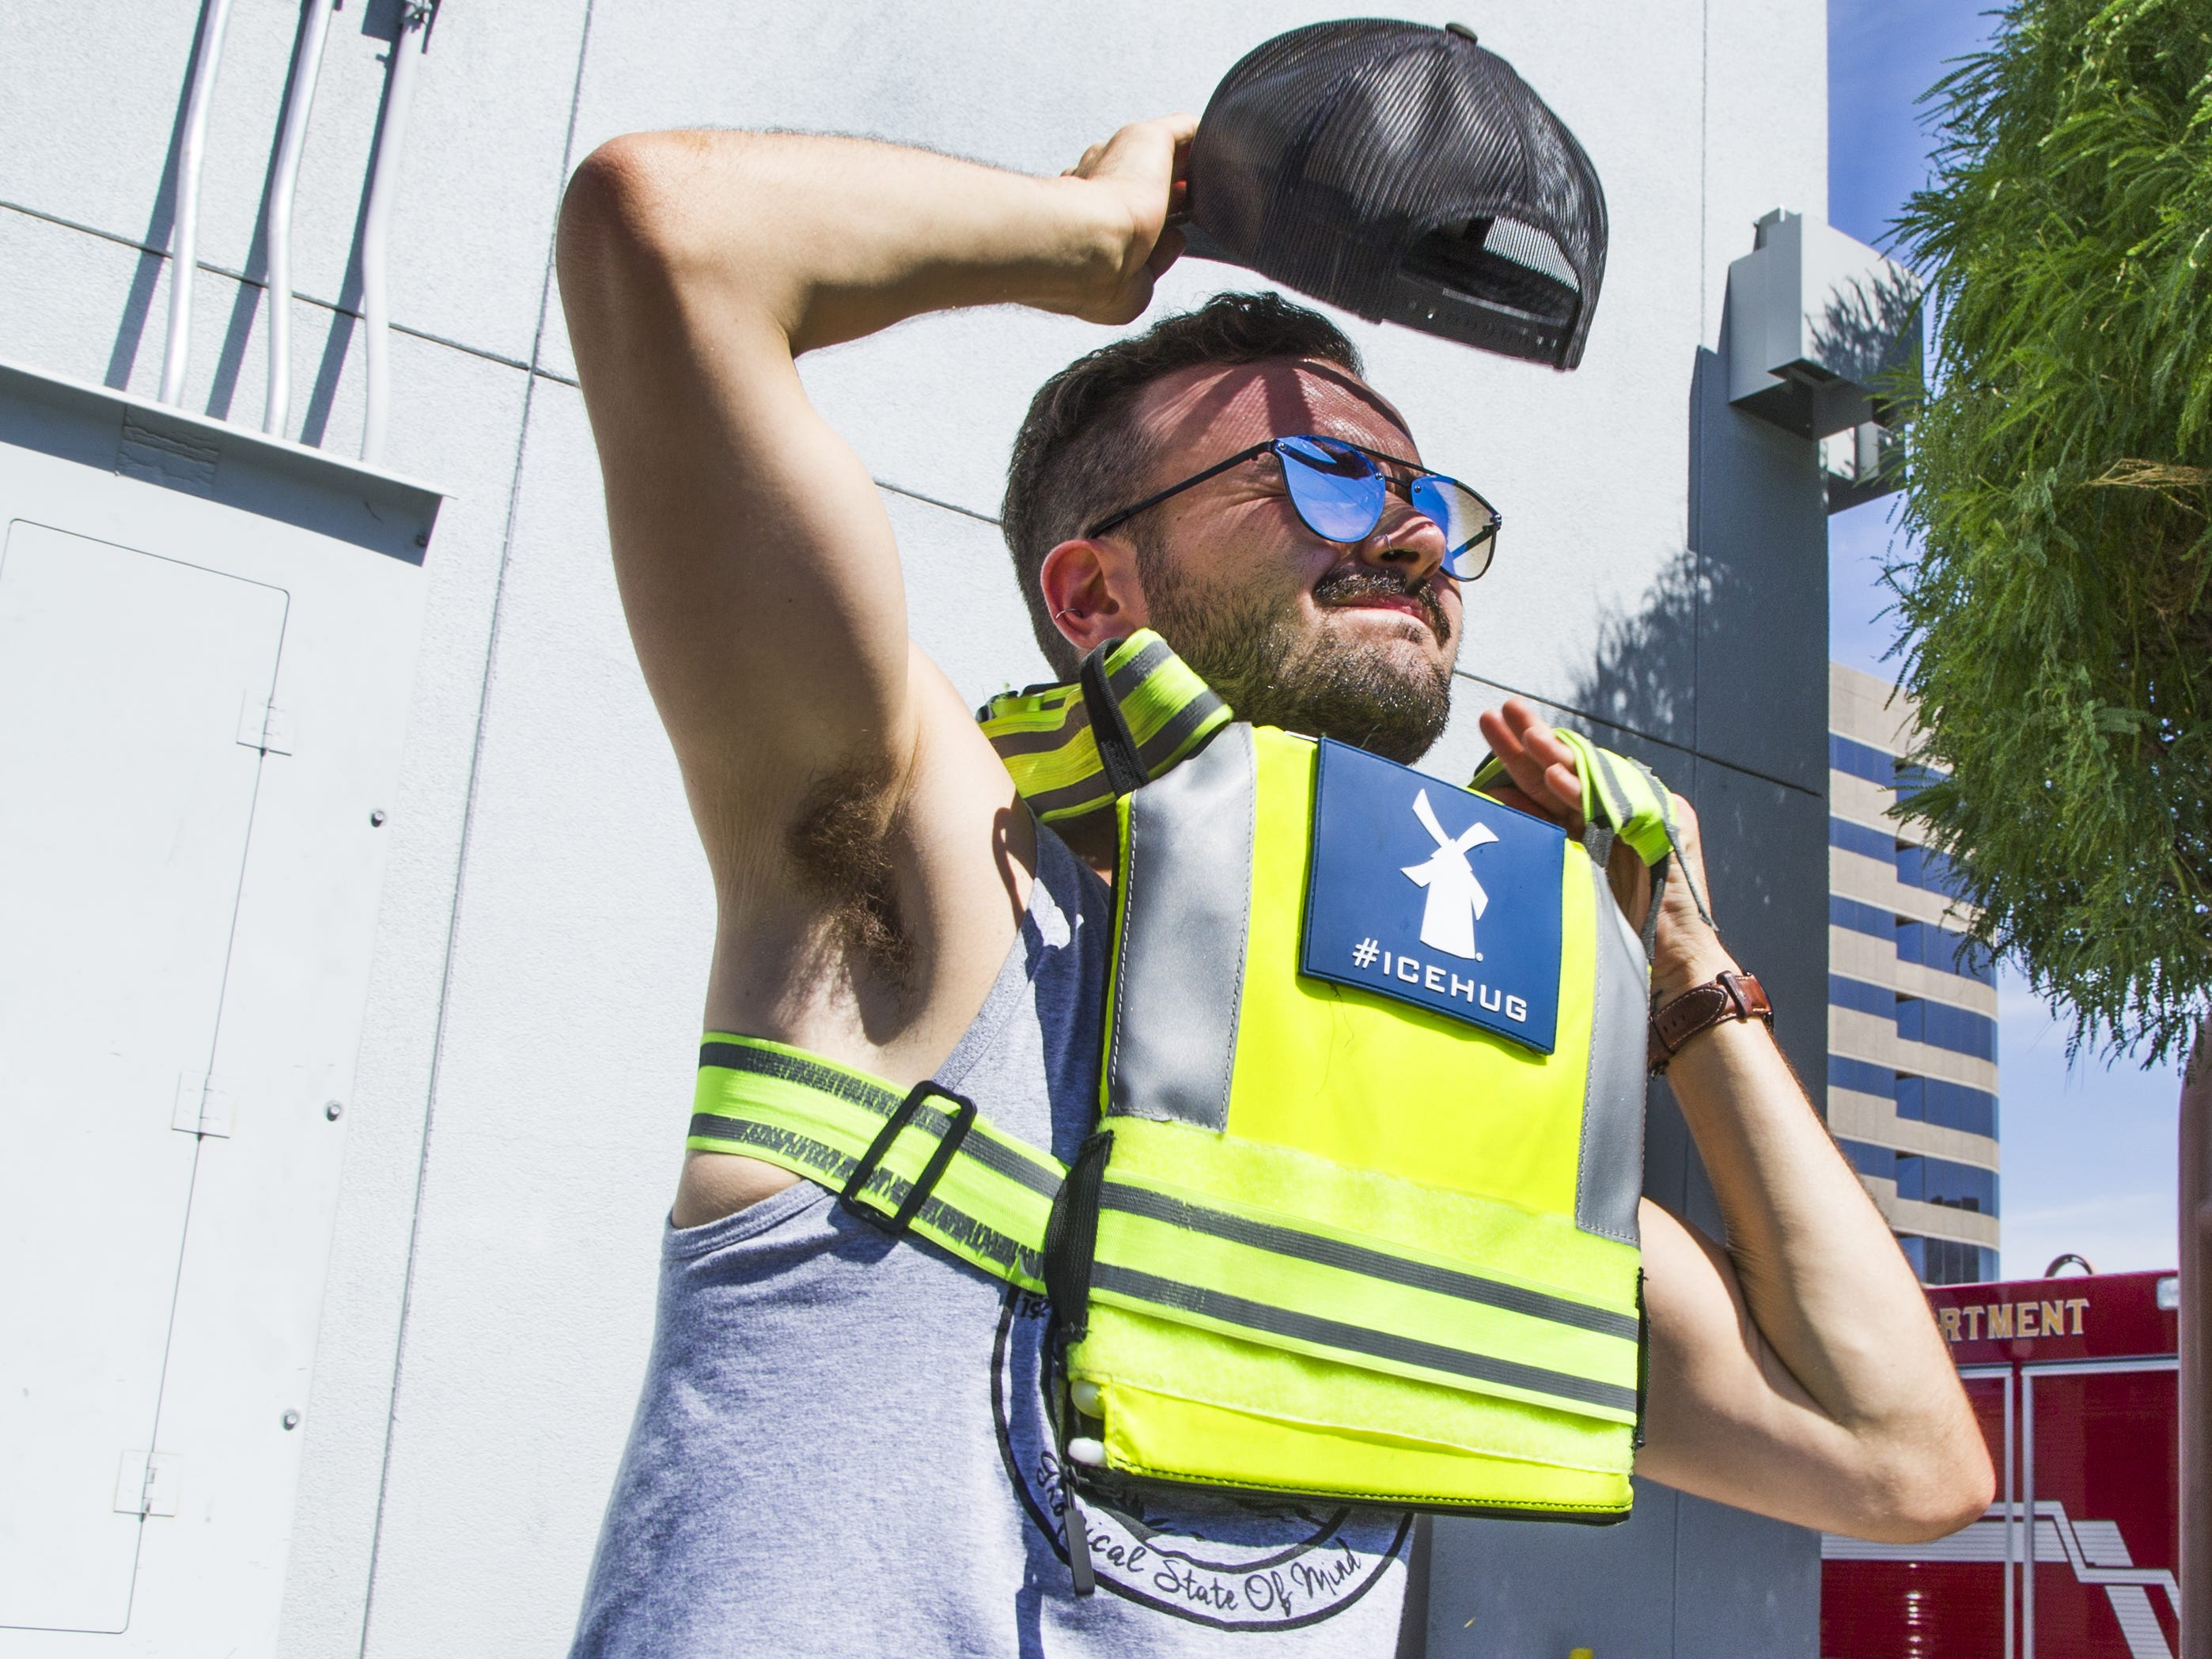 Dutch Bros. employee Ayden Major puts on an ice vest as a way to cool down when taking orders outside in the blazing heat in Phoenix.